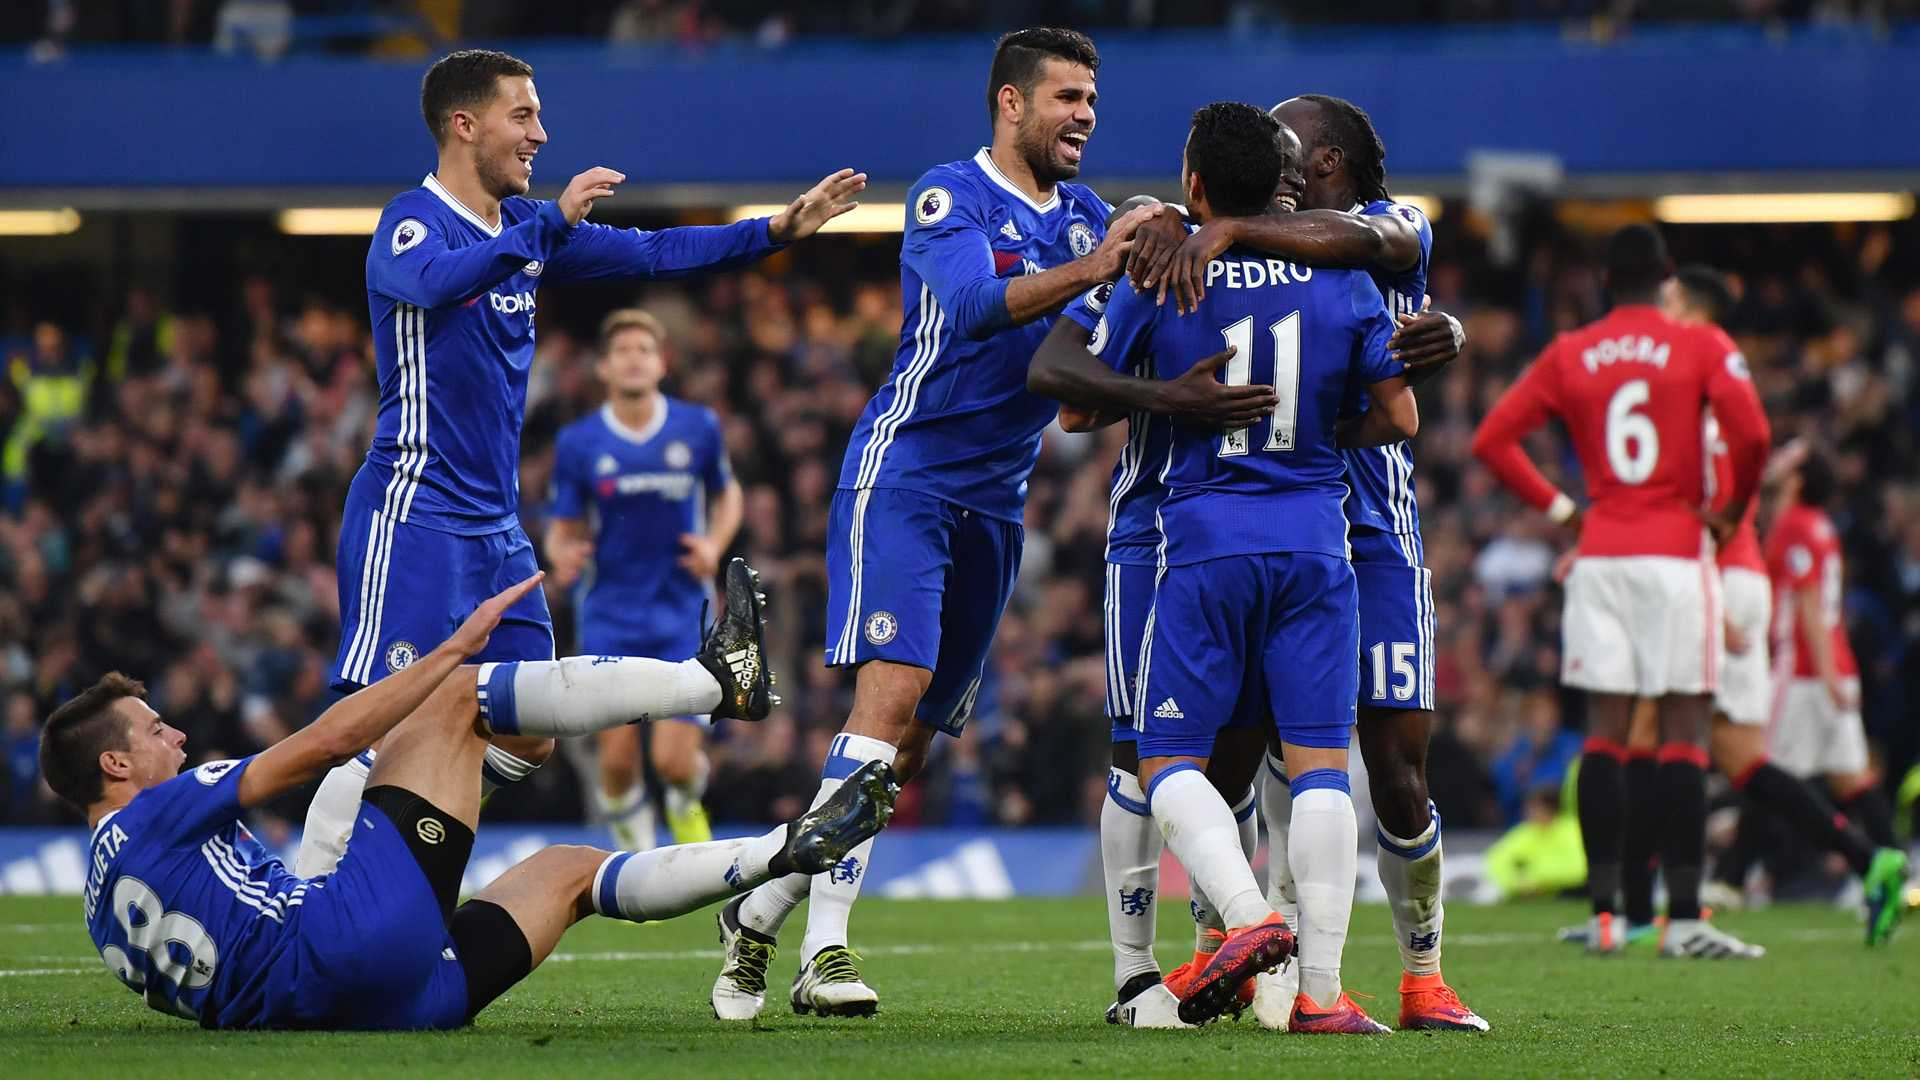 Chelsea Defeats Manchester United 1-0